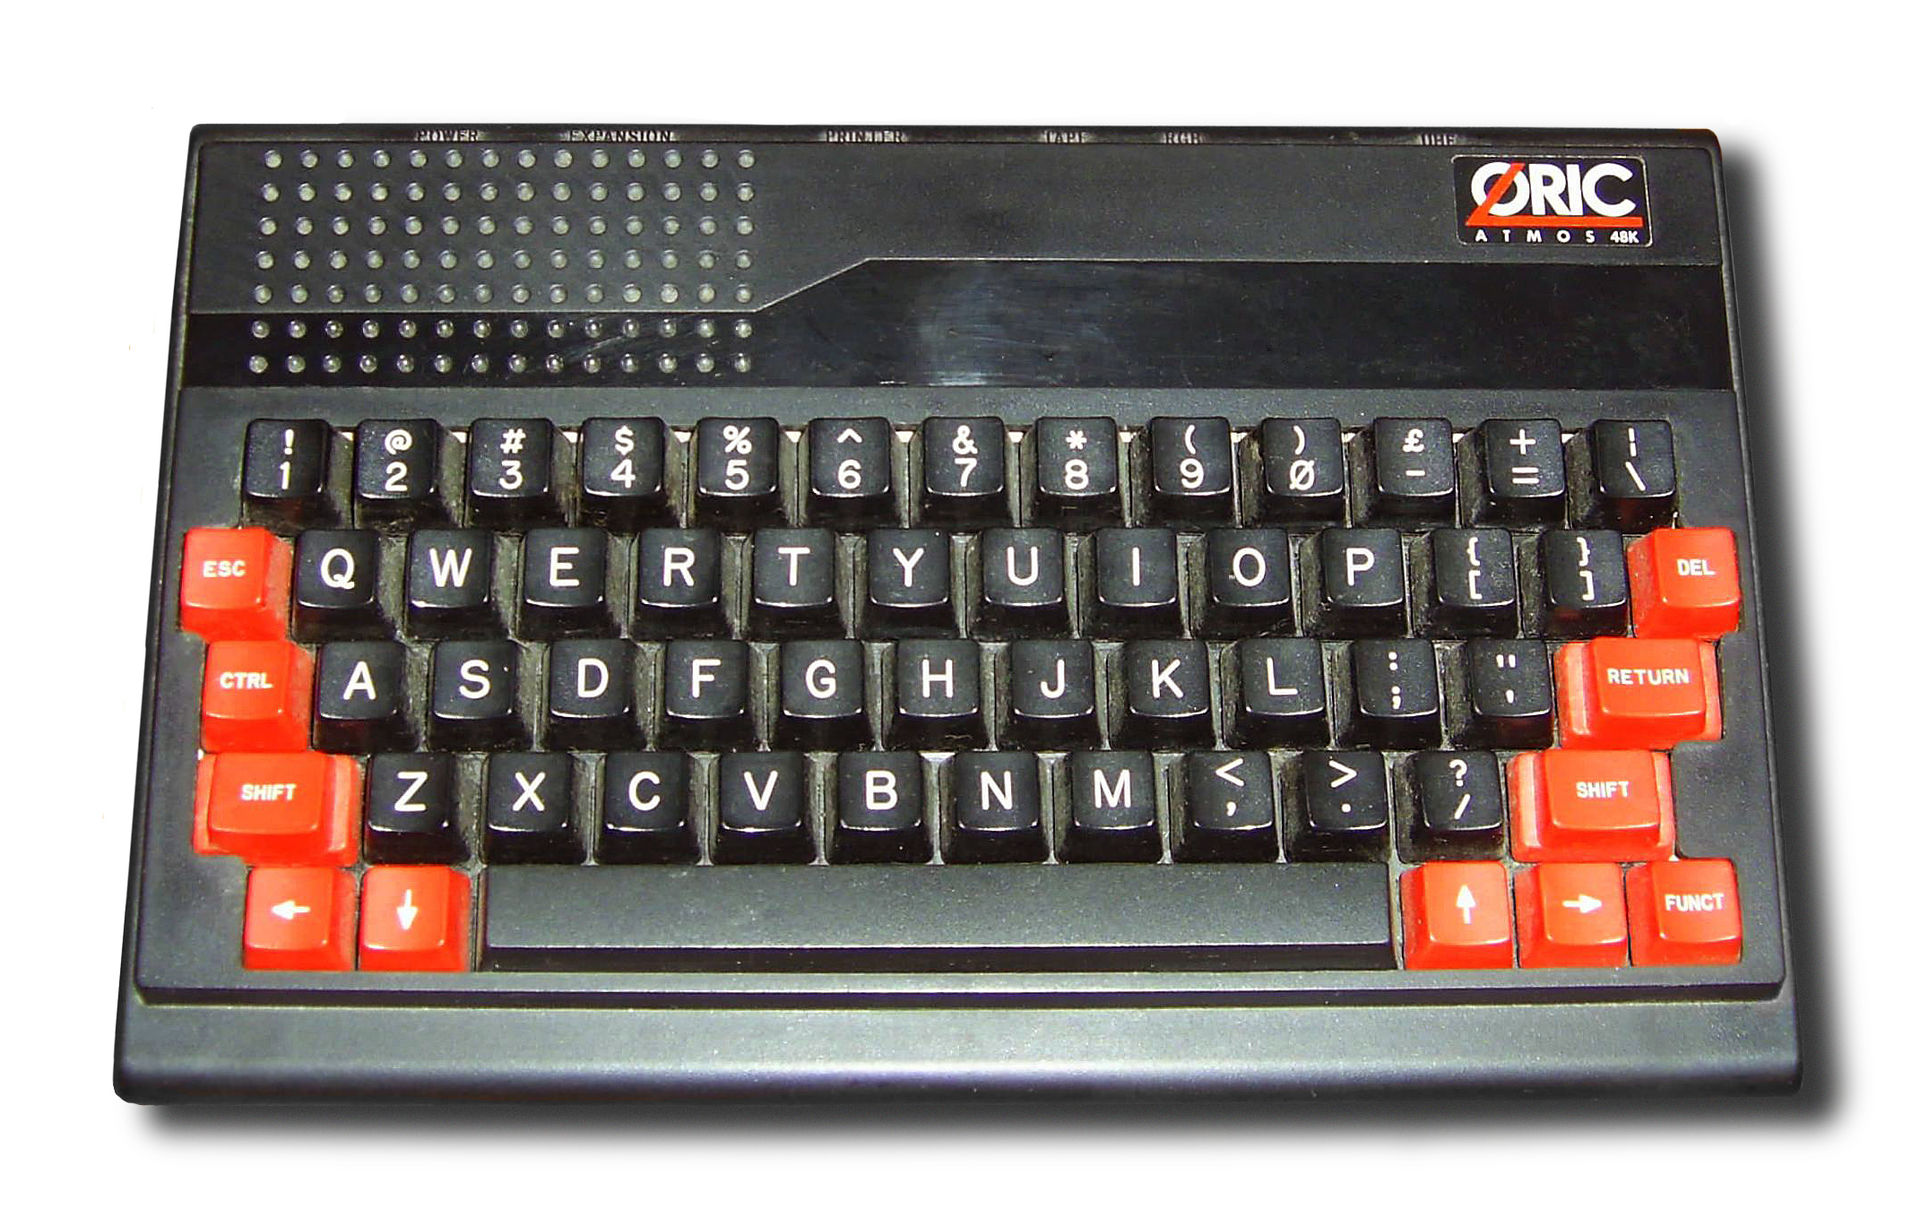 The Oric Atmos, one of the first computers Mathieu ever saw.